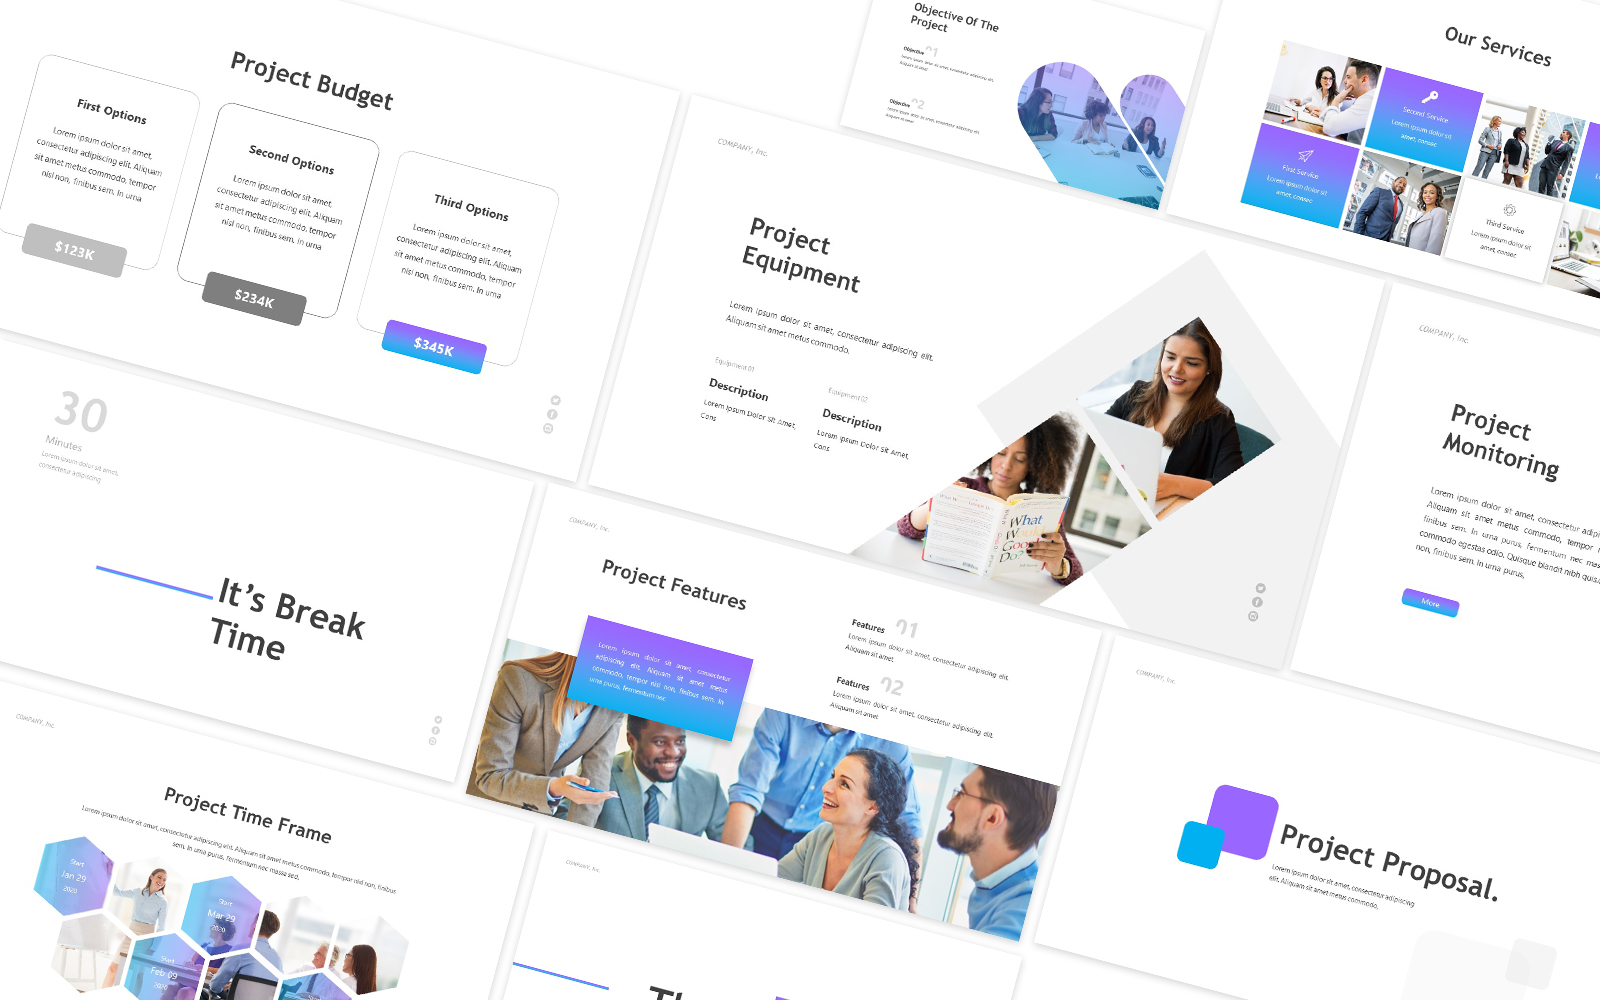 Project Proposal Business Powerpoint Template